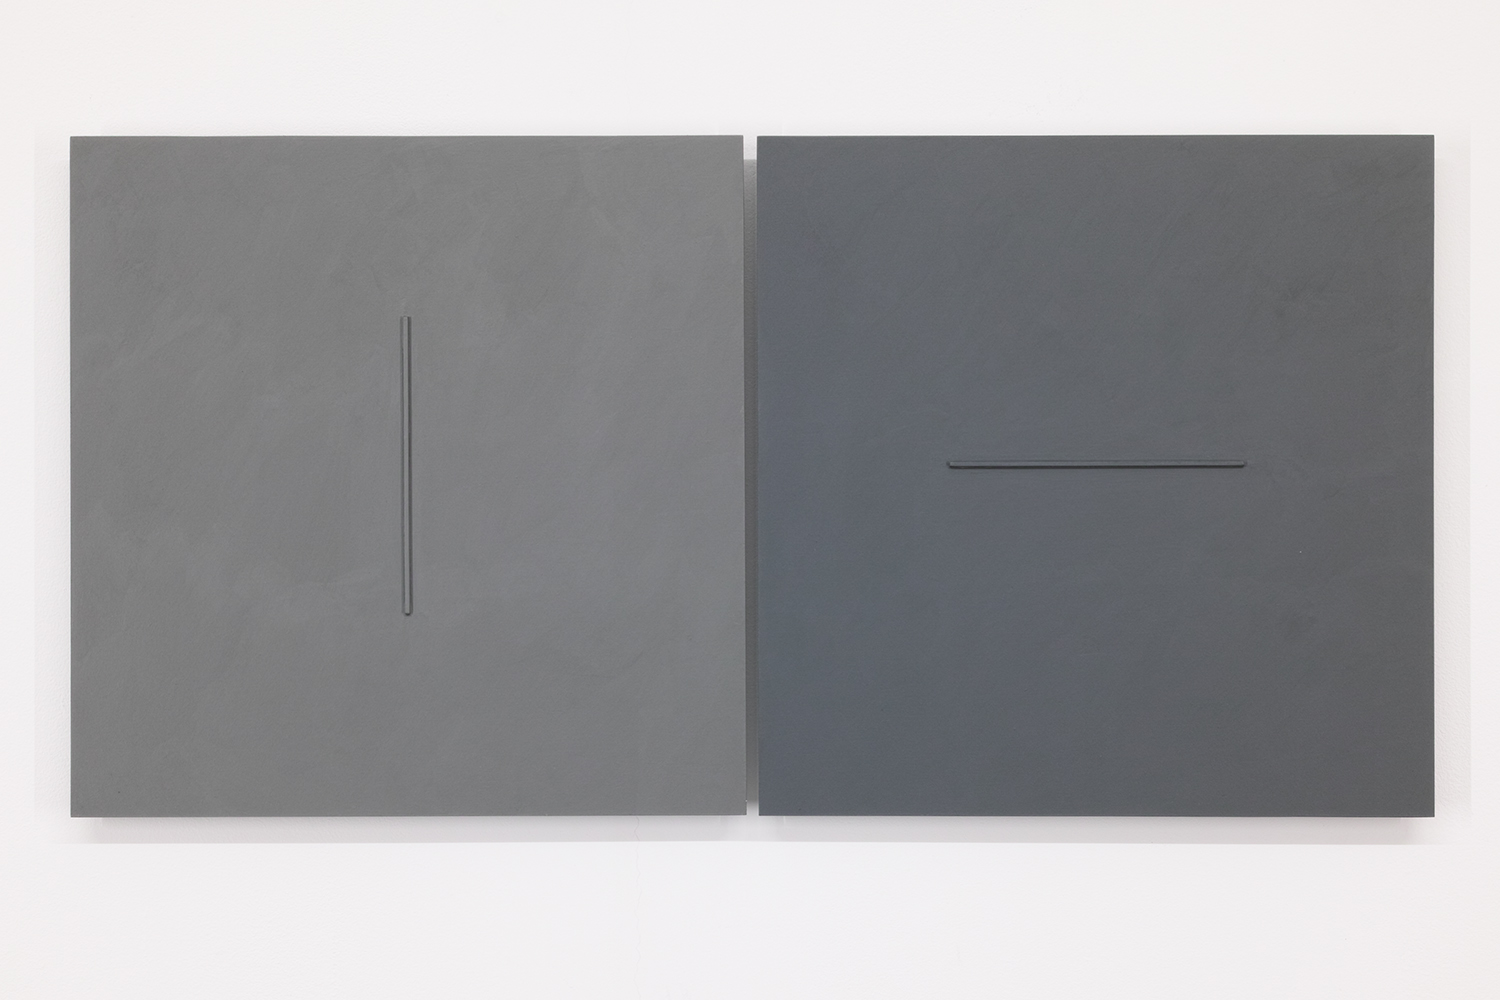 TS1816<br>Colour Gesso on Panel, 30 x 30 cm each (set of 2), 2018